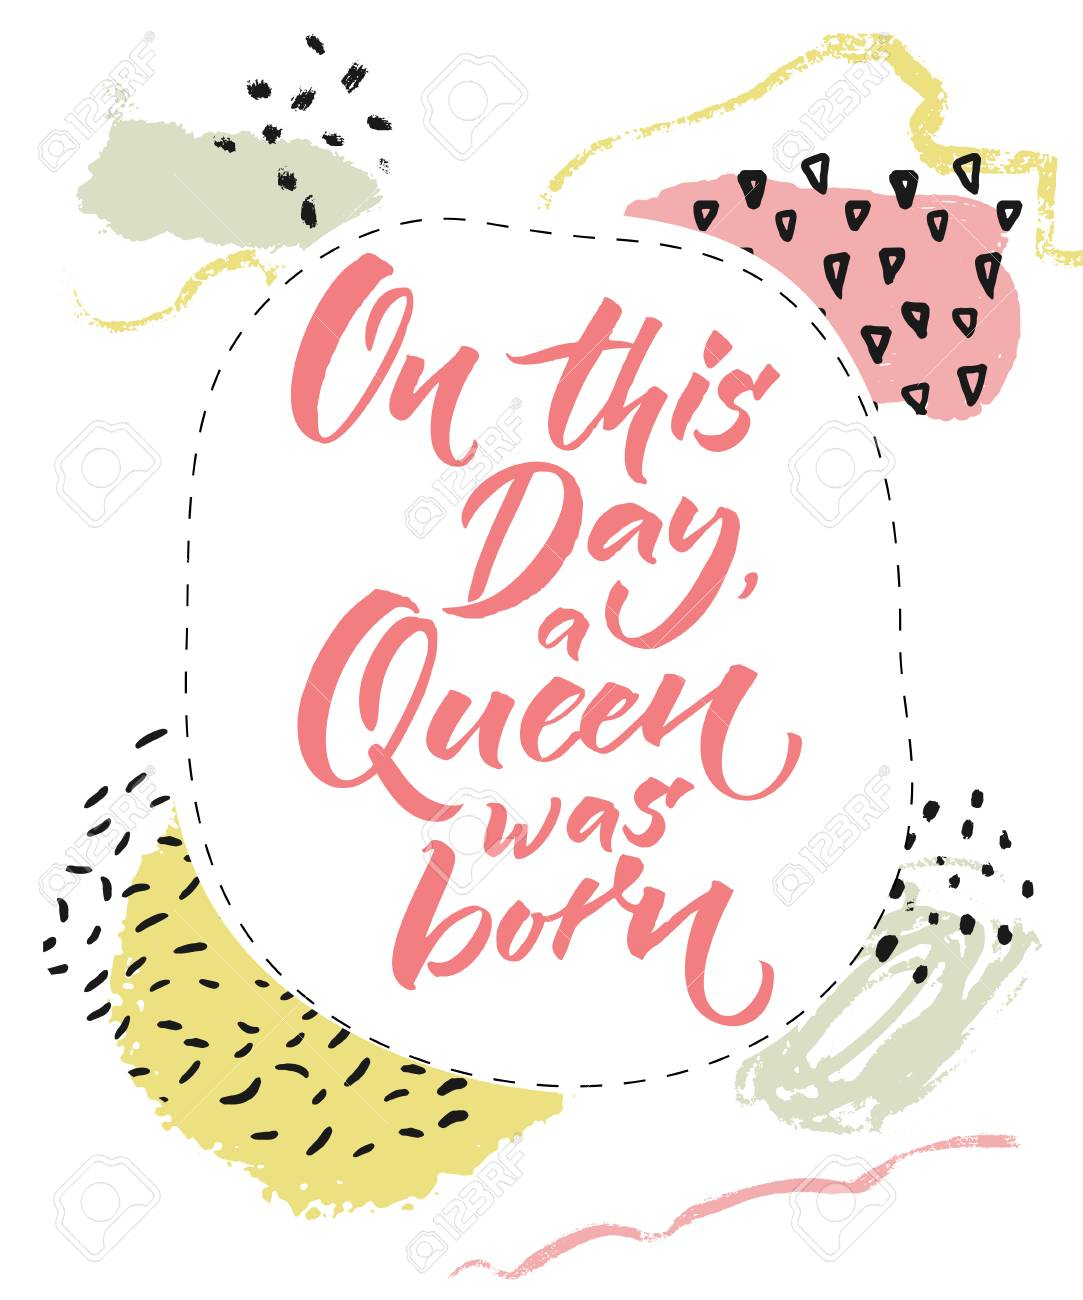 On This Day A Queen Was Born Happy Birthday Card For Girls Brush Calligraphy